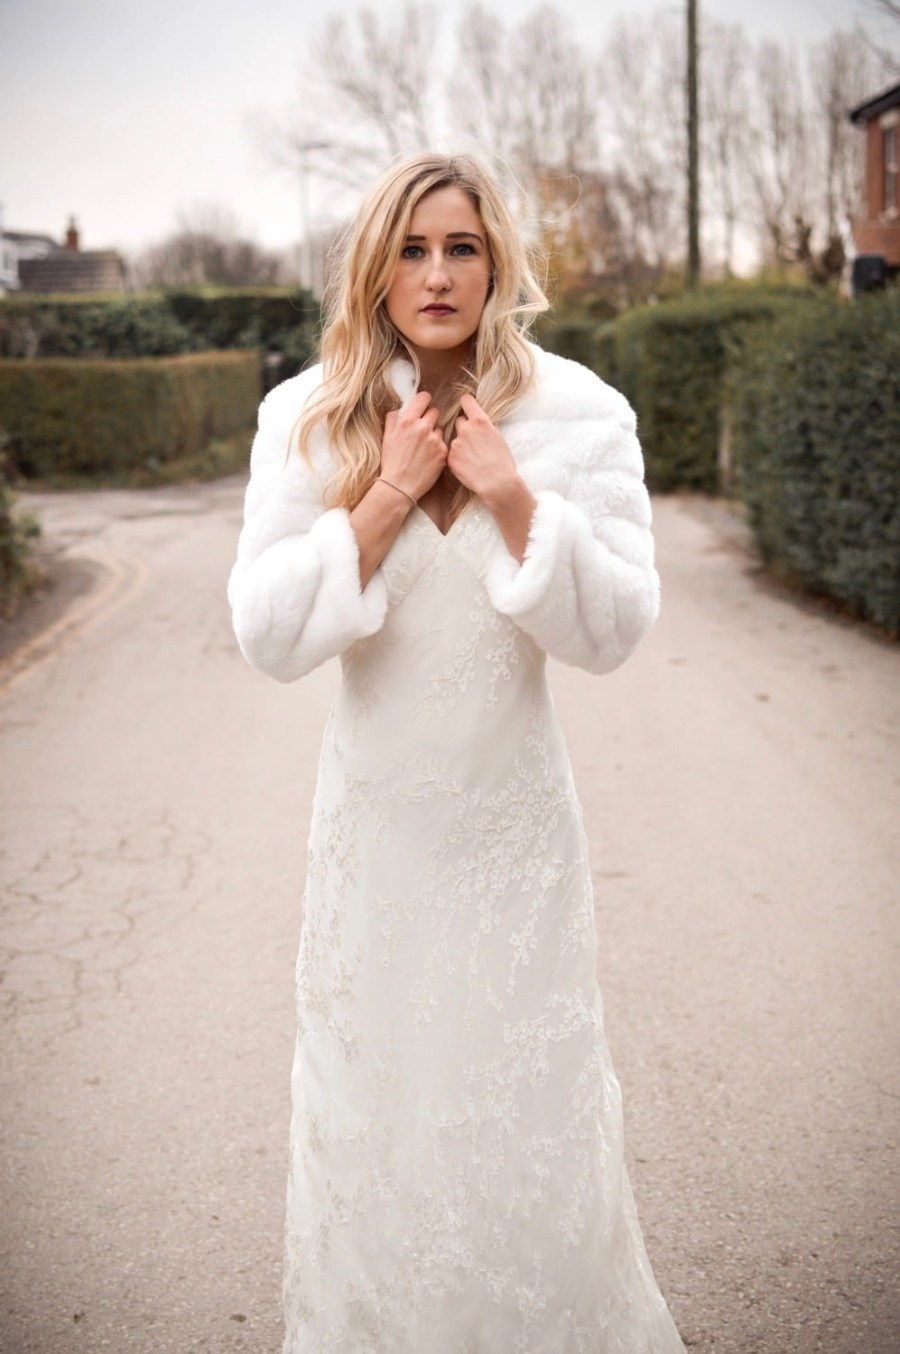 Faux fur cropped bridal jacket with sleeves on blonde bride - bb42